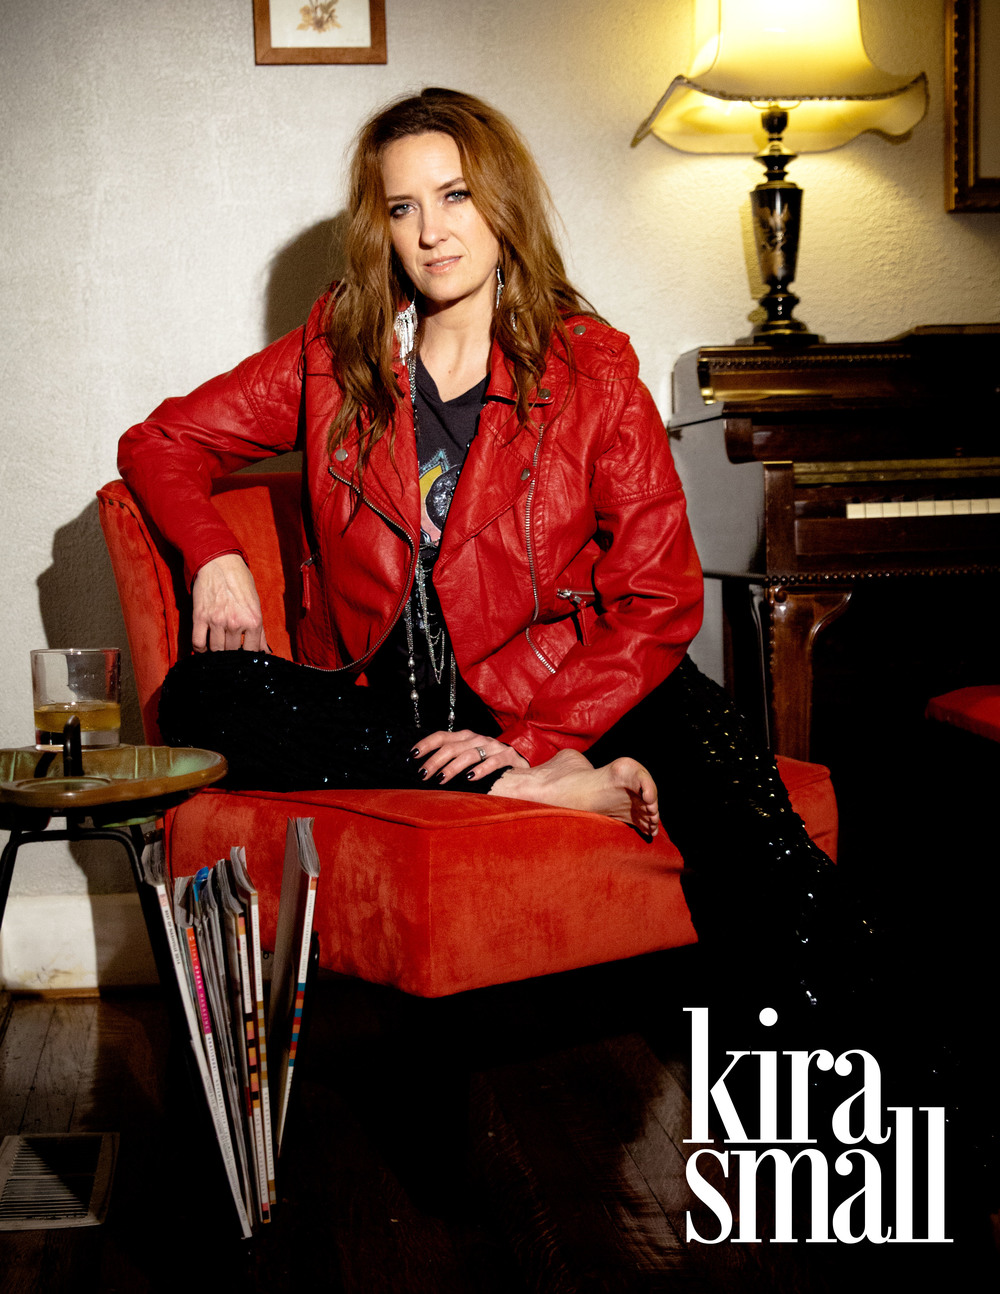 Kira-Small-Red-Jacket-Portrait-High-Rez-Logo-3140x4064.jpg